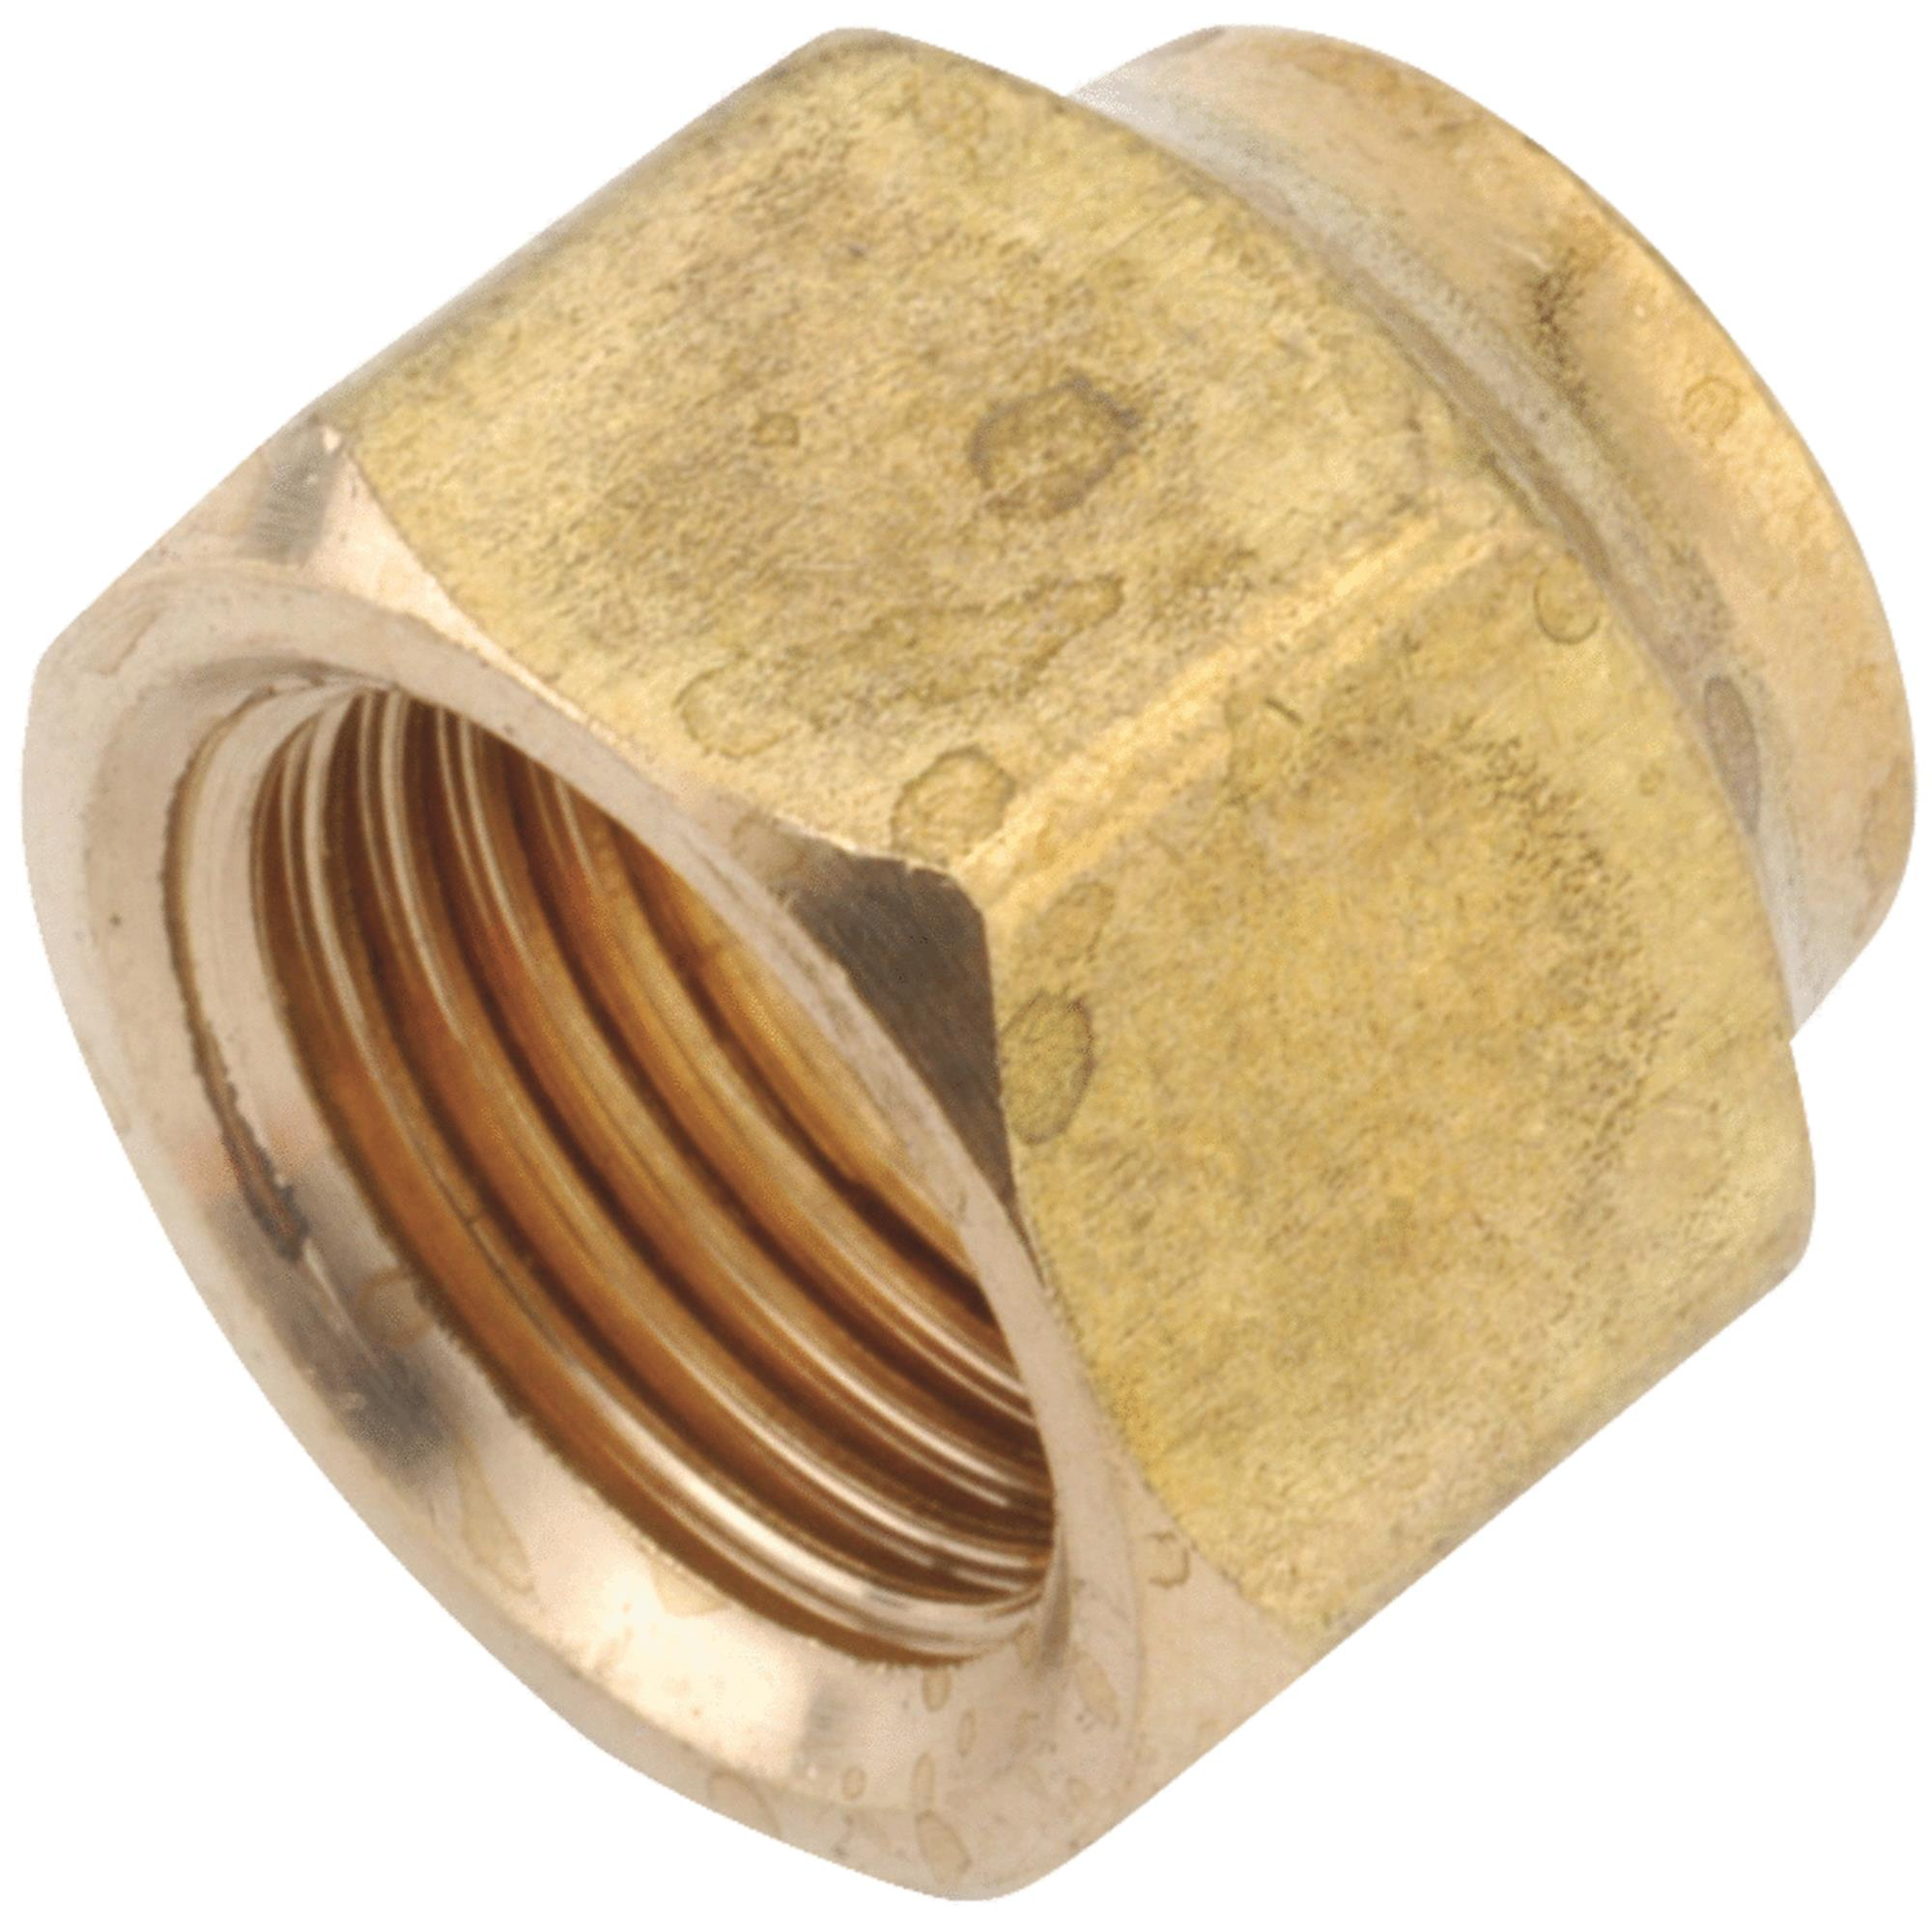 "Anderson Metals Corp Inc 5/8"" Flare Nut 754018-10 Pack of 5"